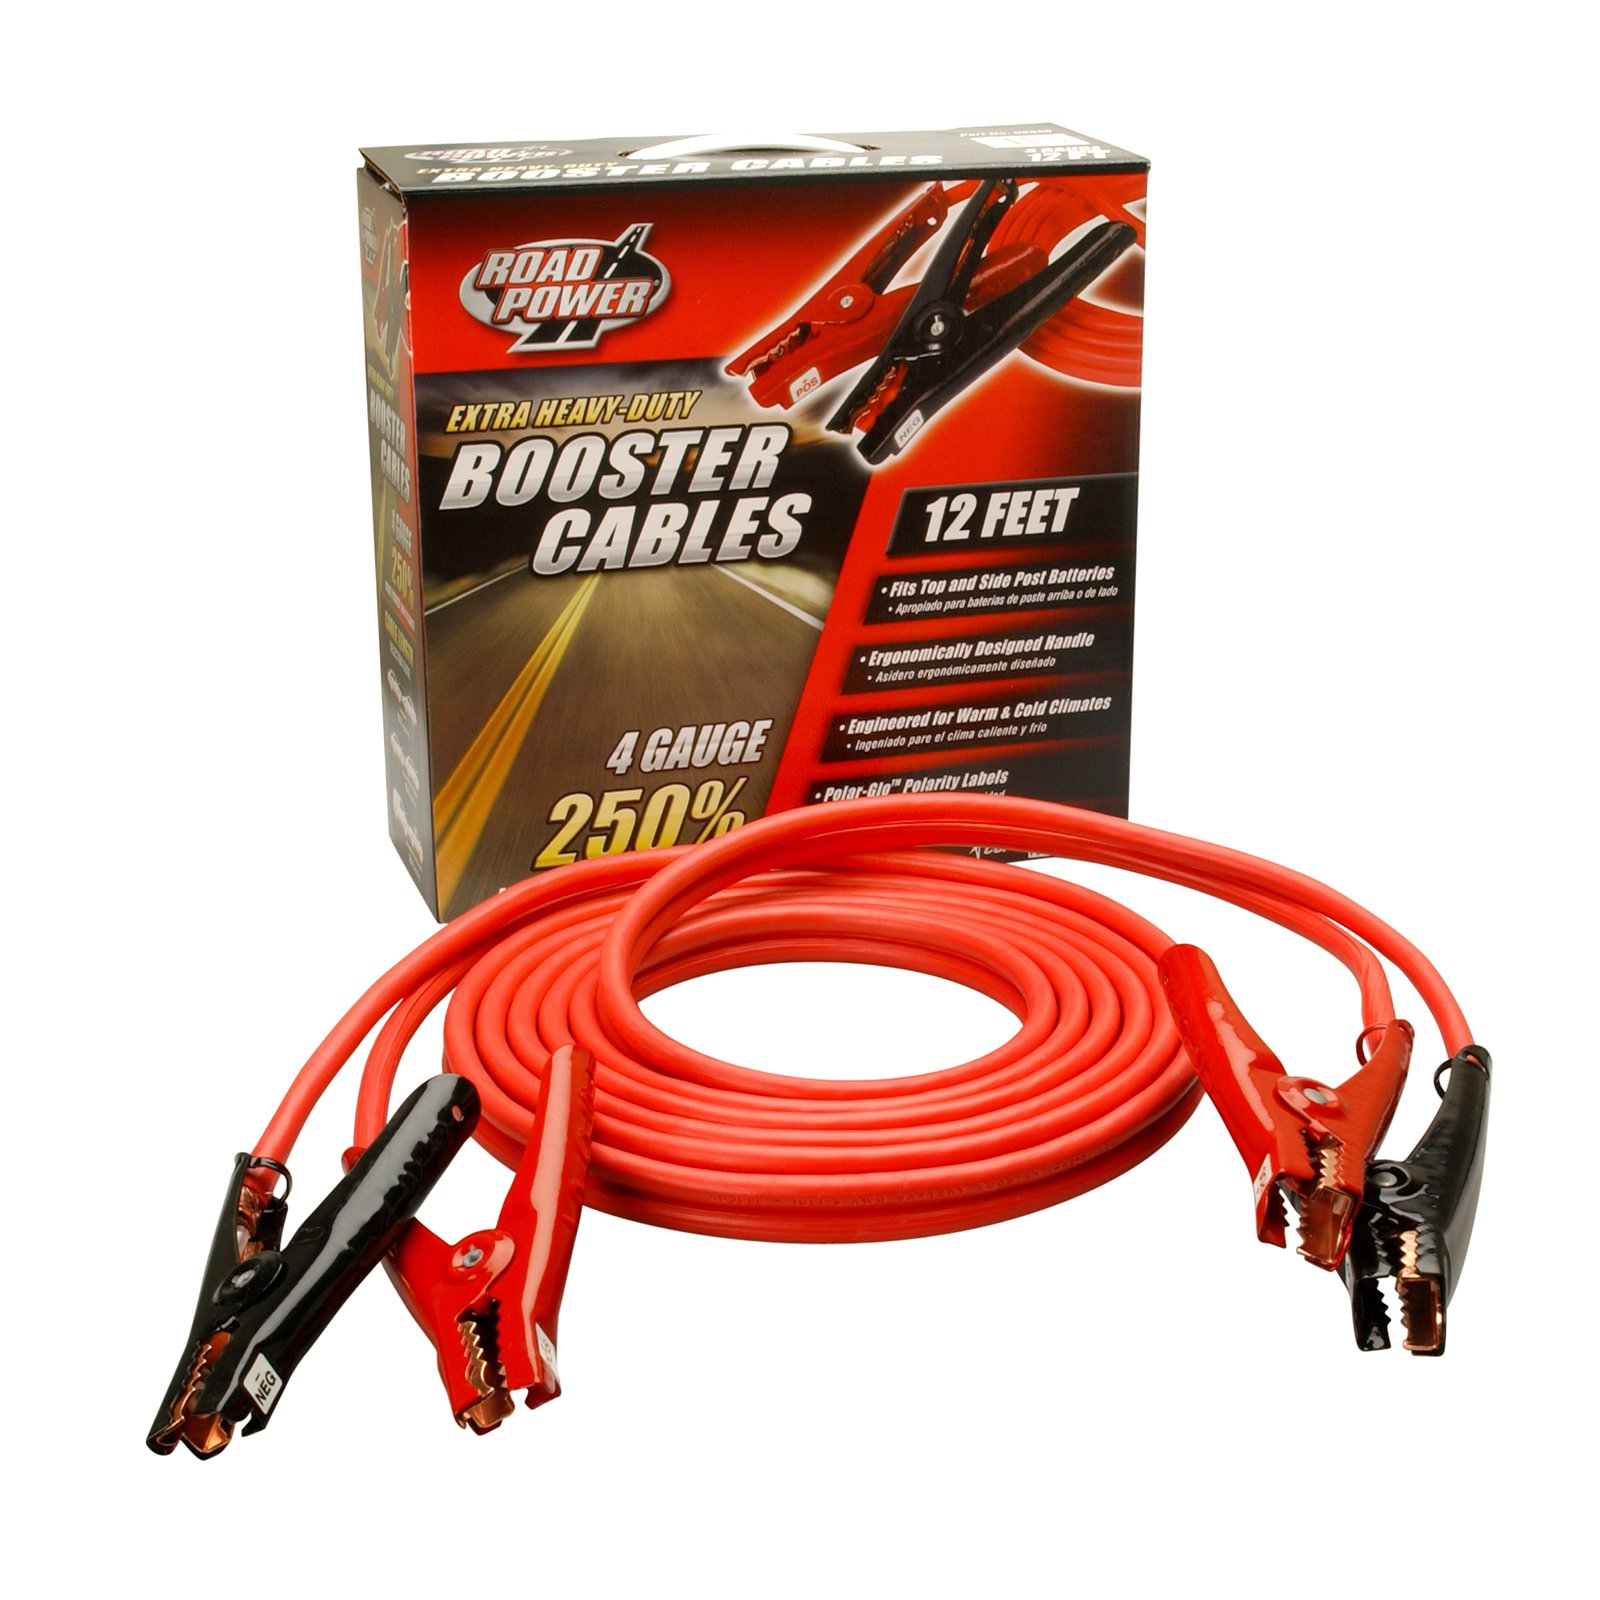 Coleman Cable 08665 12' Heavy-Duty Truck and Auto Battery Booster Cables with Polar Glow Clamps, 4-Gauge